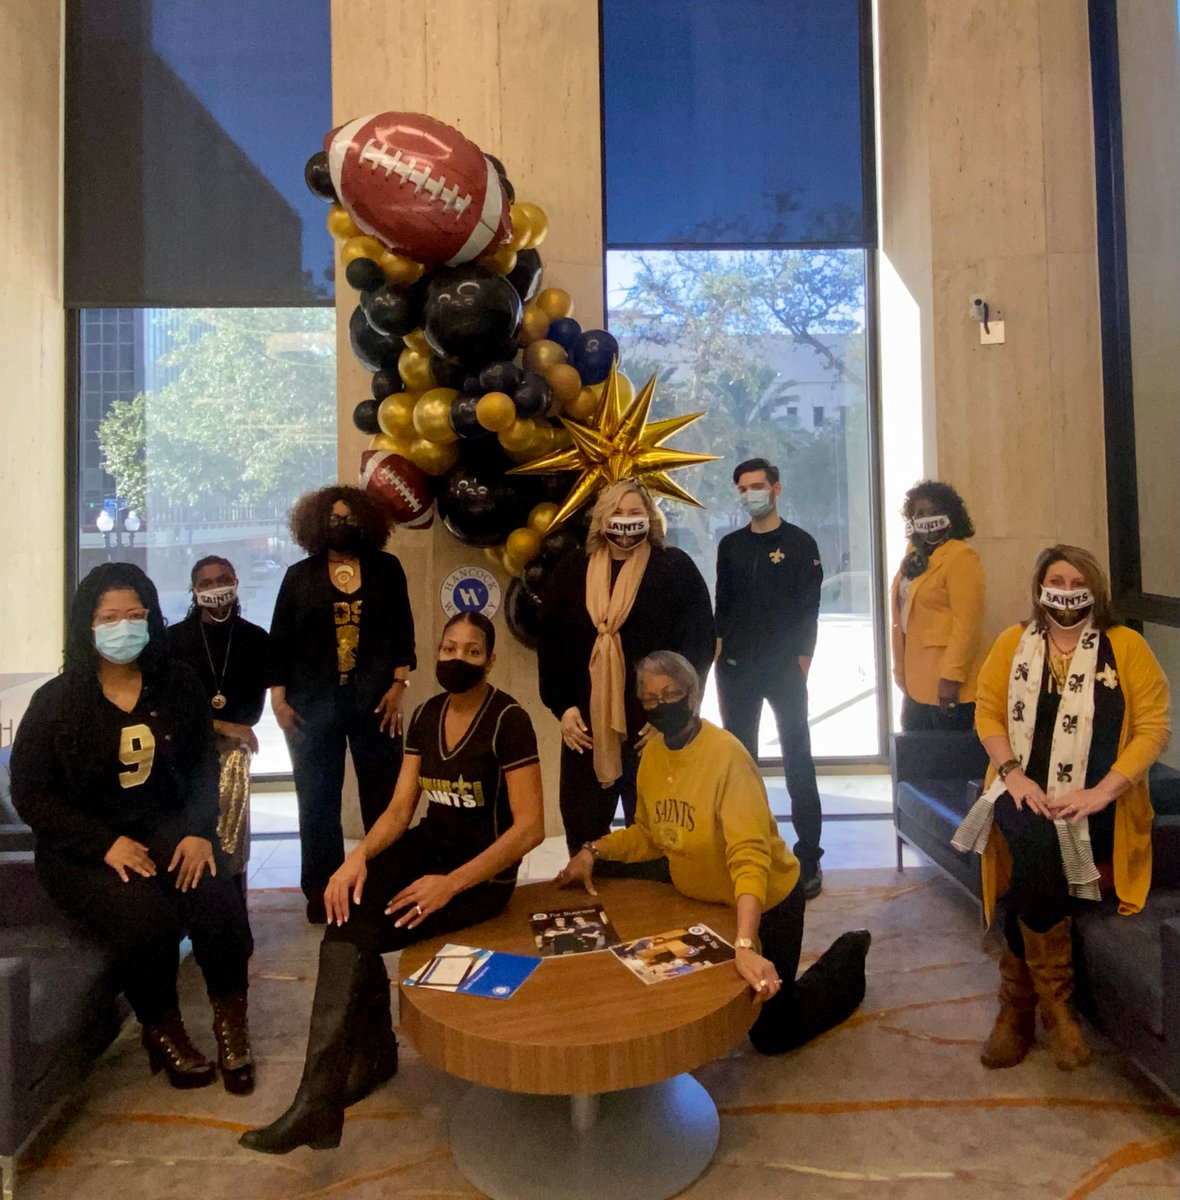 It's another #BlackandGoldFriday, and our associates sure know how to cheer on the New Orleans Saints! We'll be rooting for you this weekend in the playoffs! https://t.co/KK4aeIgZ0D